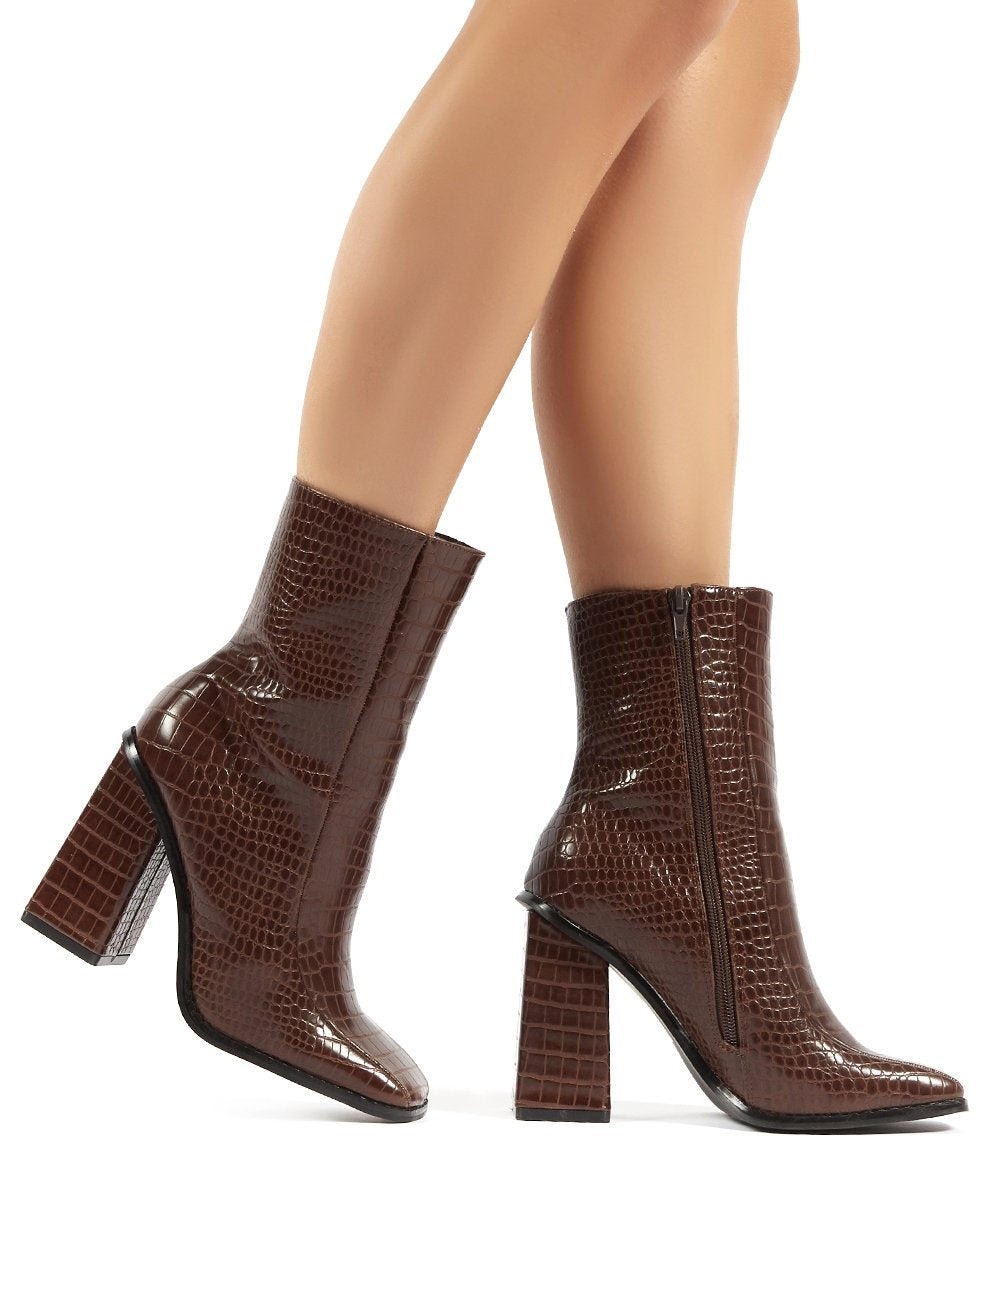 slick chocolate croc square toe block heeled ankle boots - us 5